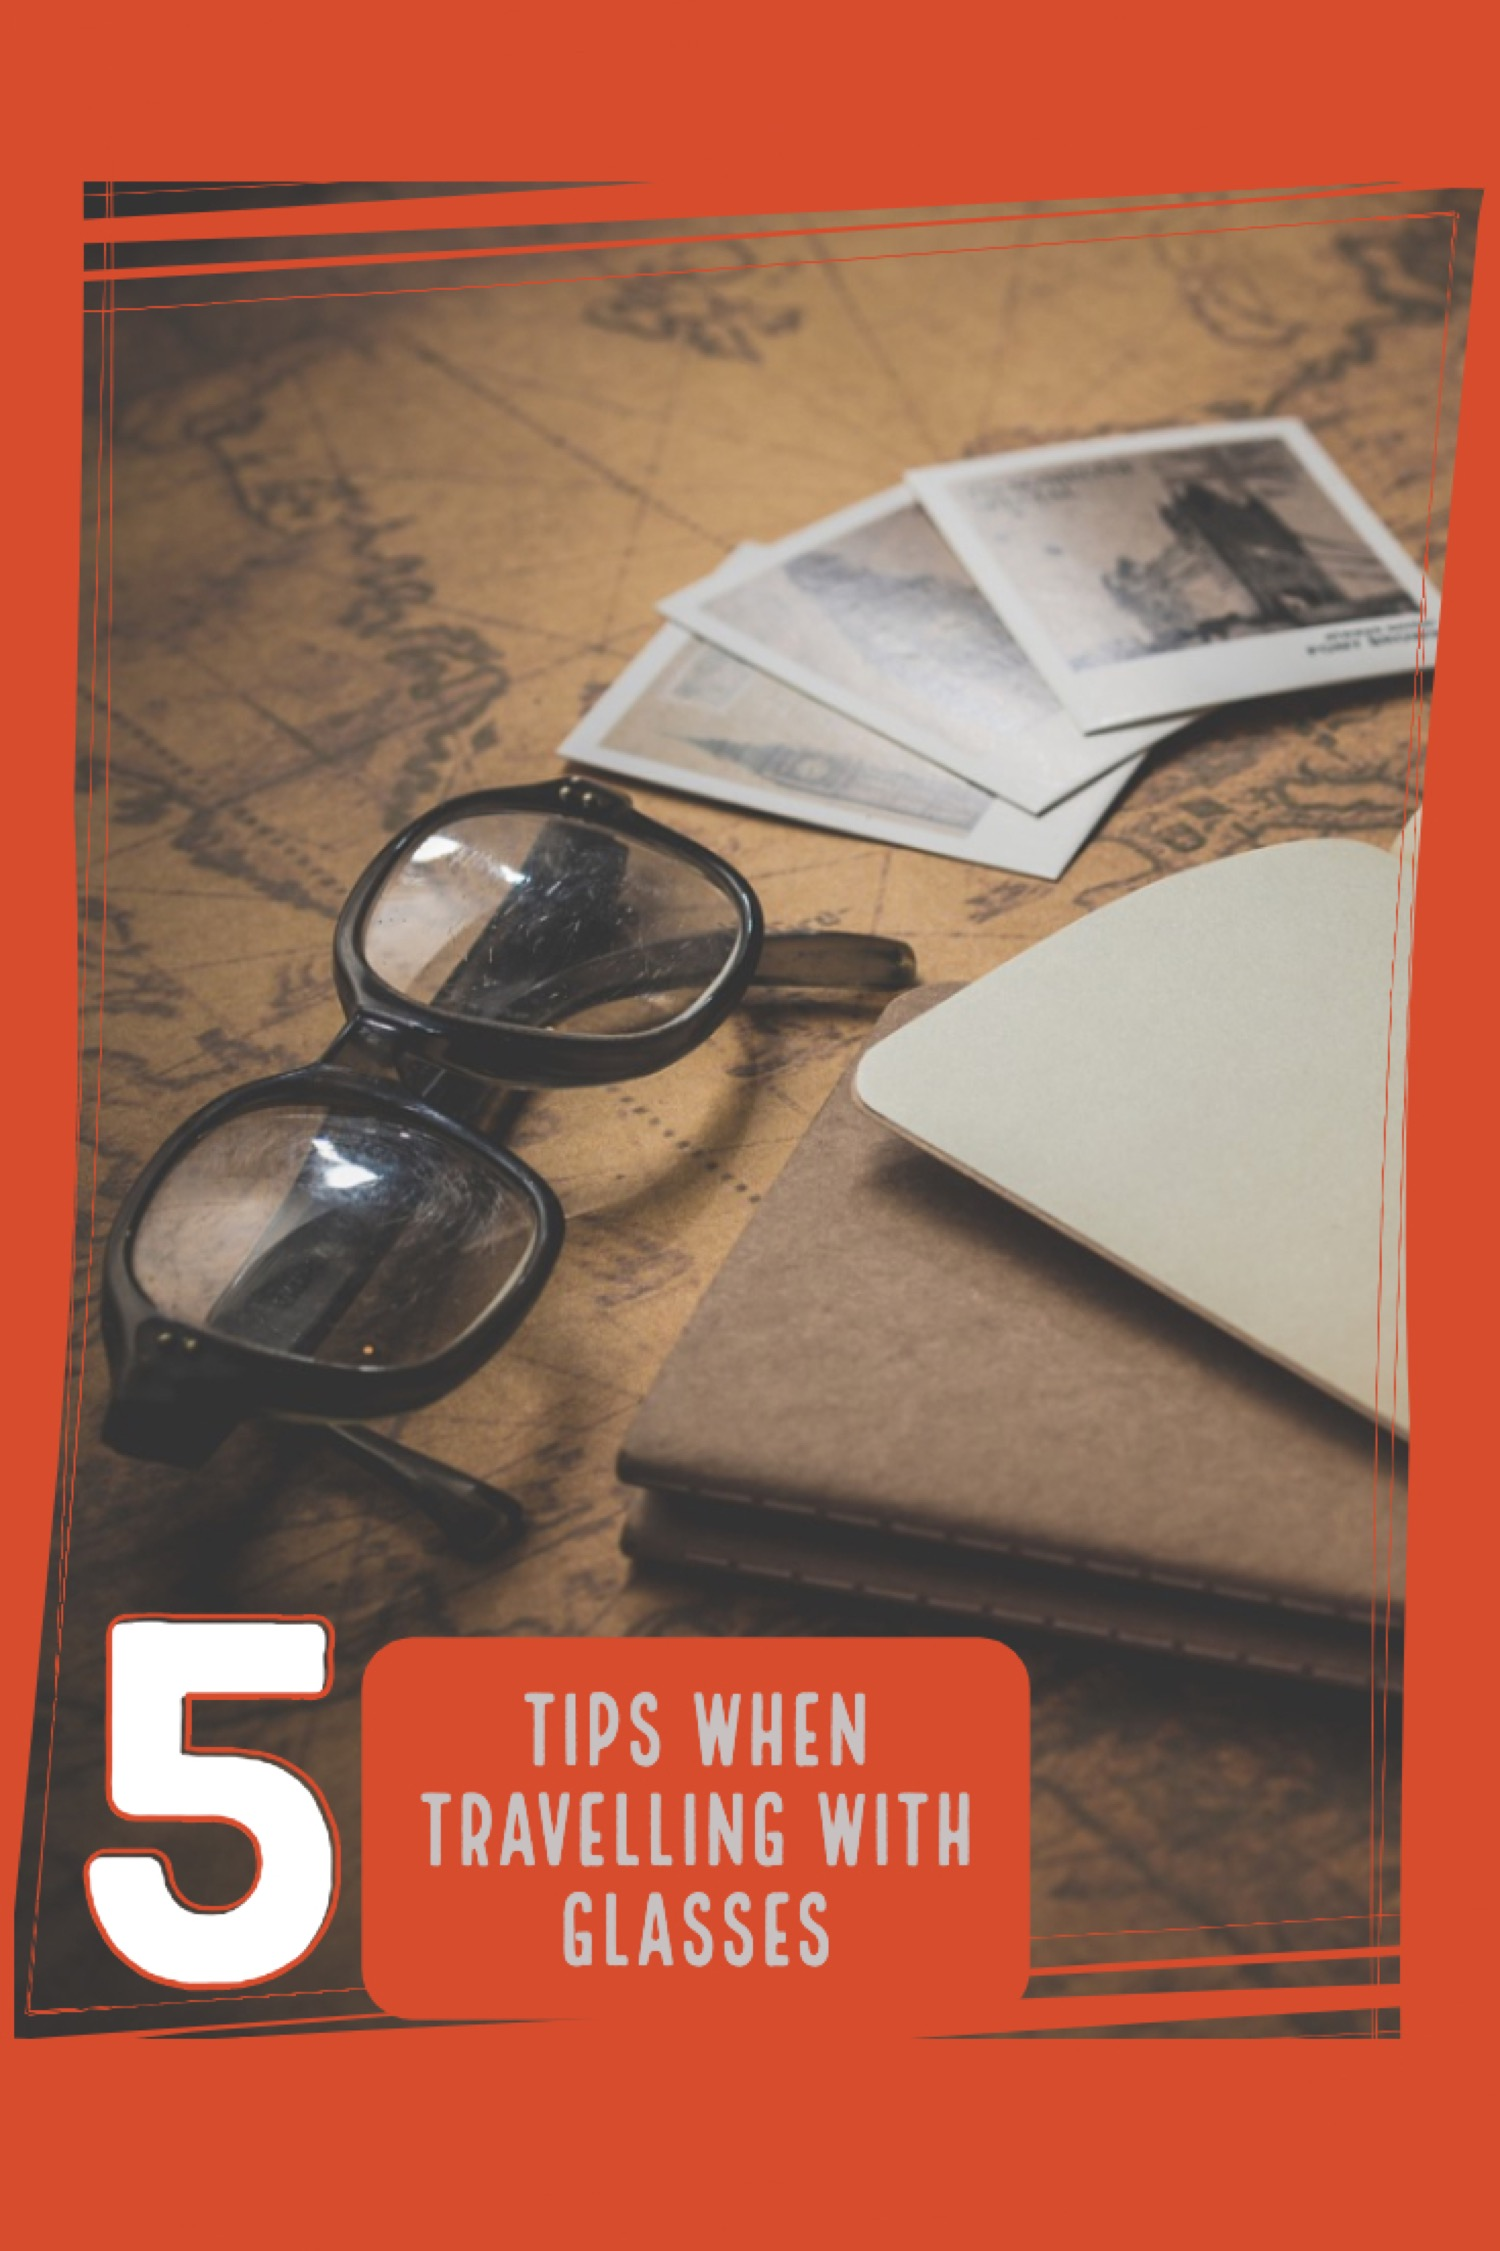 5 Tips when travelling with glasses 1